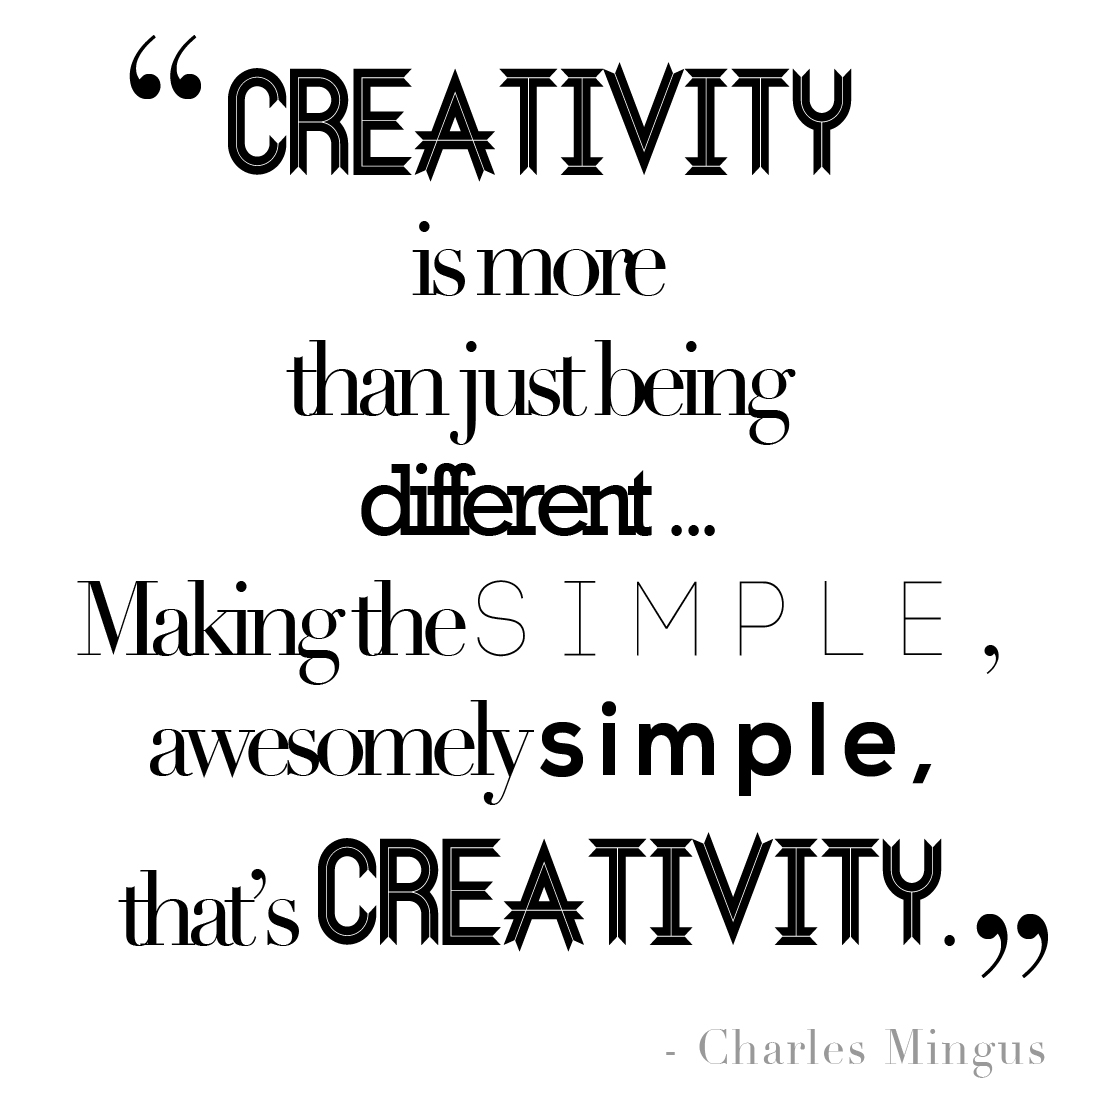 Creativity And Innovation Quotes: Creativity Quotes. QuotesGram